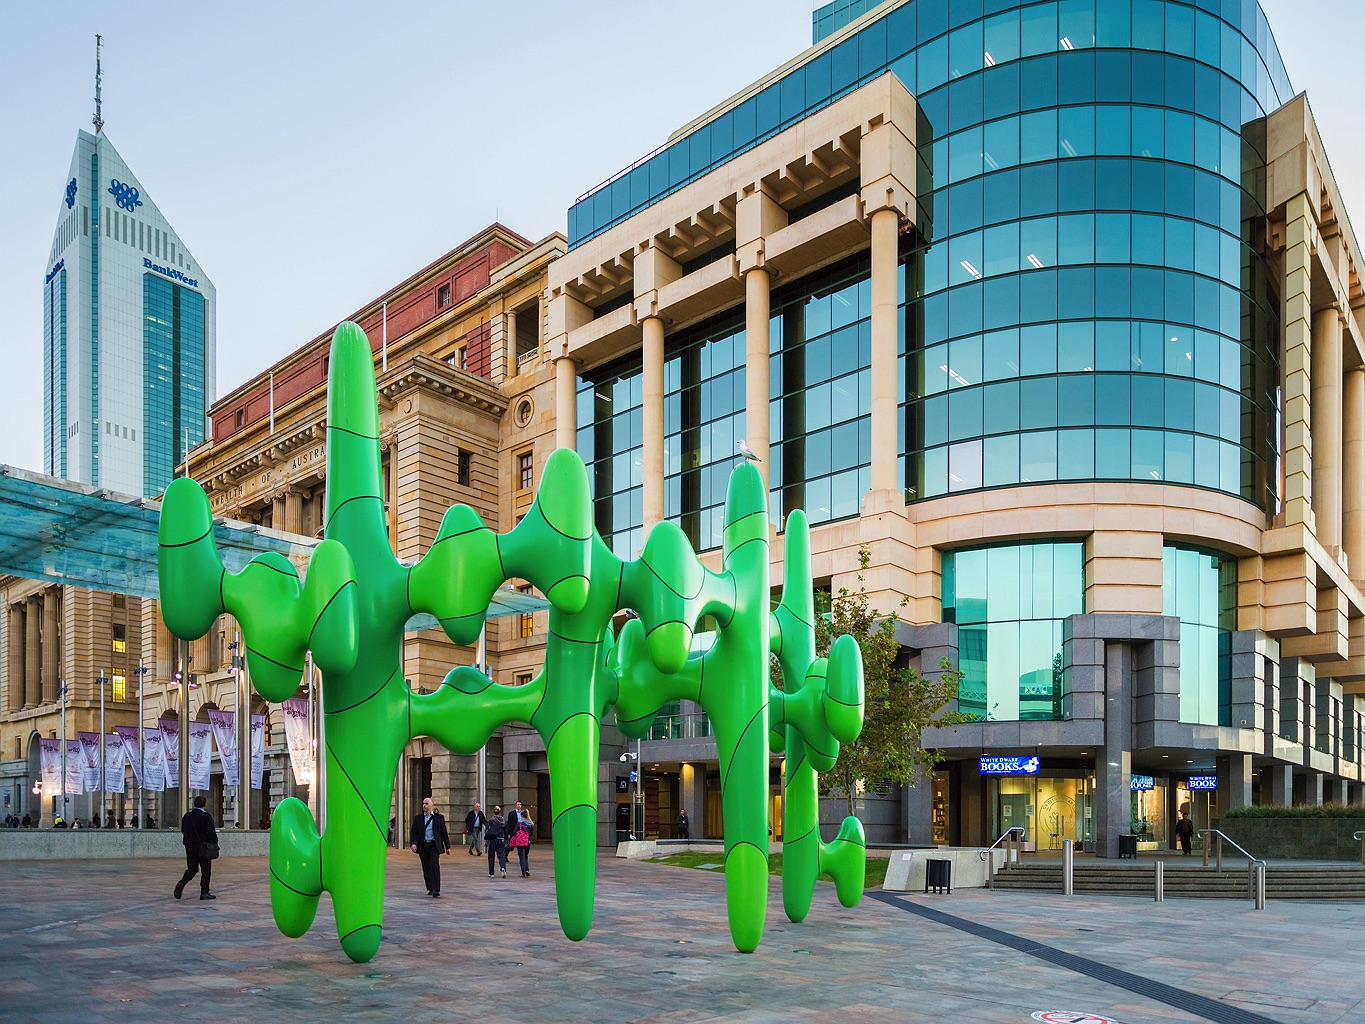 forrest-place-cactus-perth